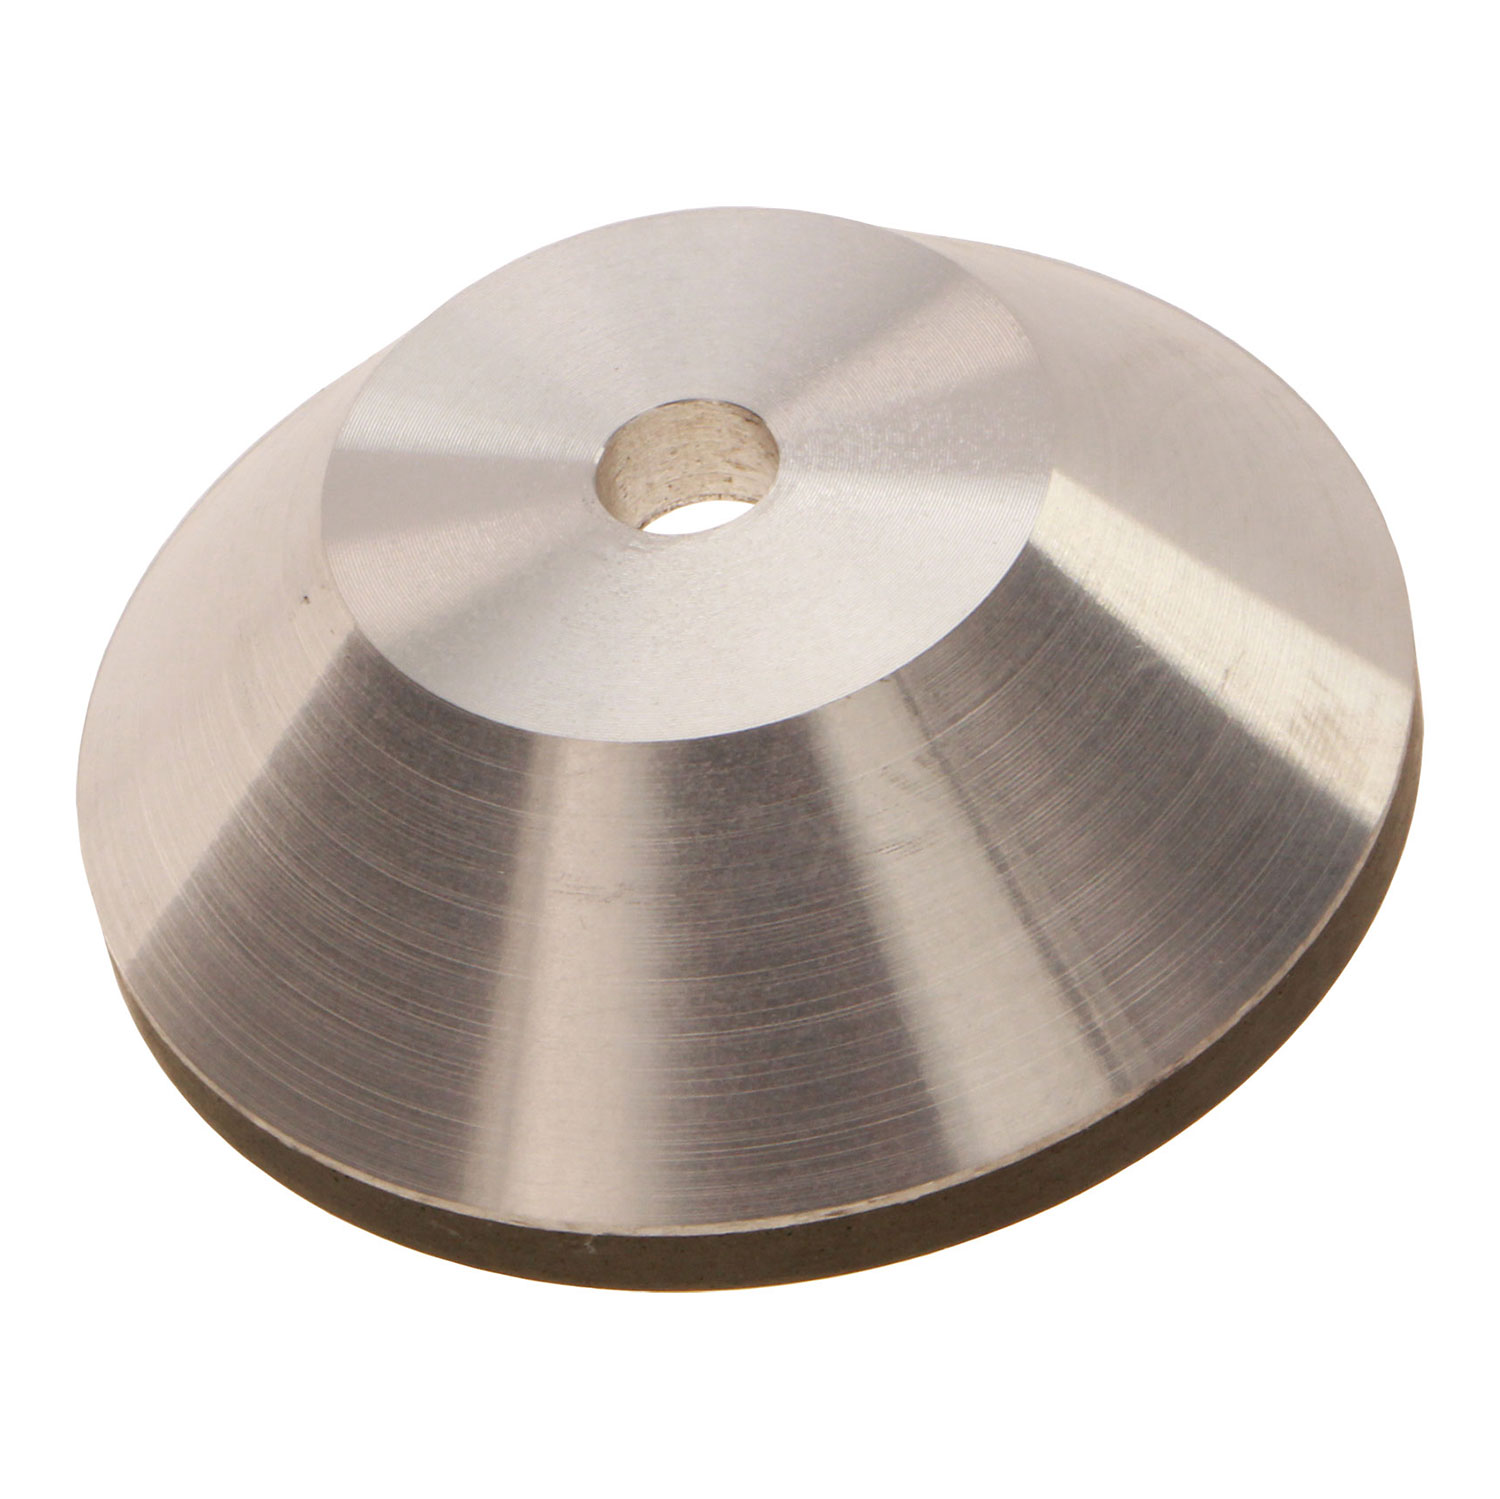 1pc 75mm Cup Diamond Grinding Wheel Grit 300 Tool Cutter Grinder Free Shipping